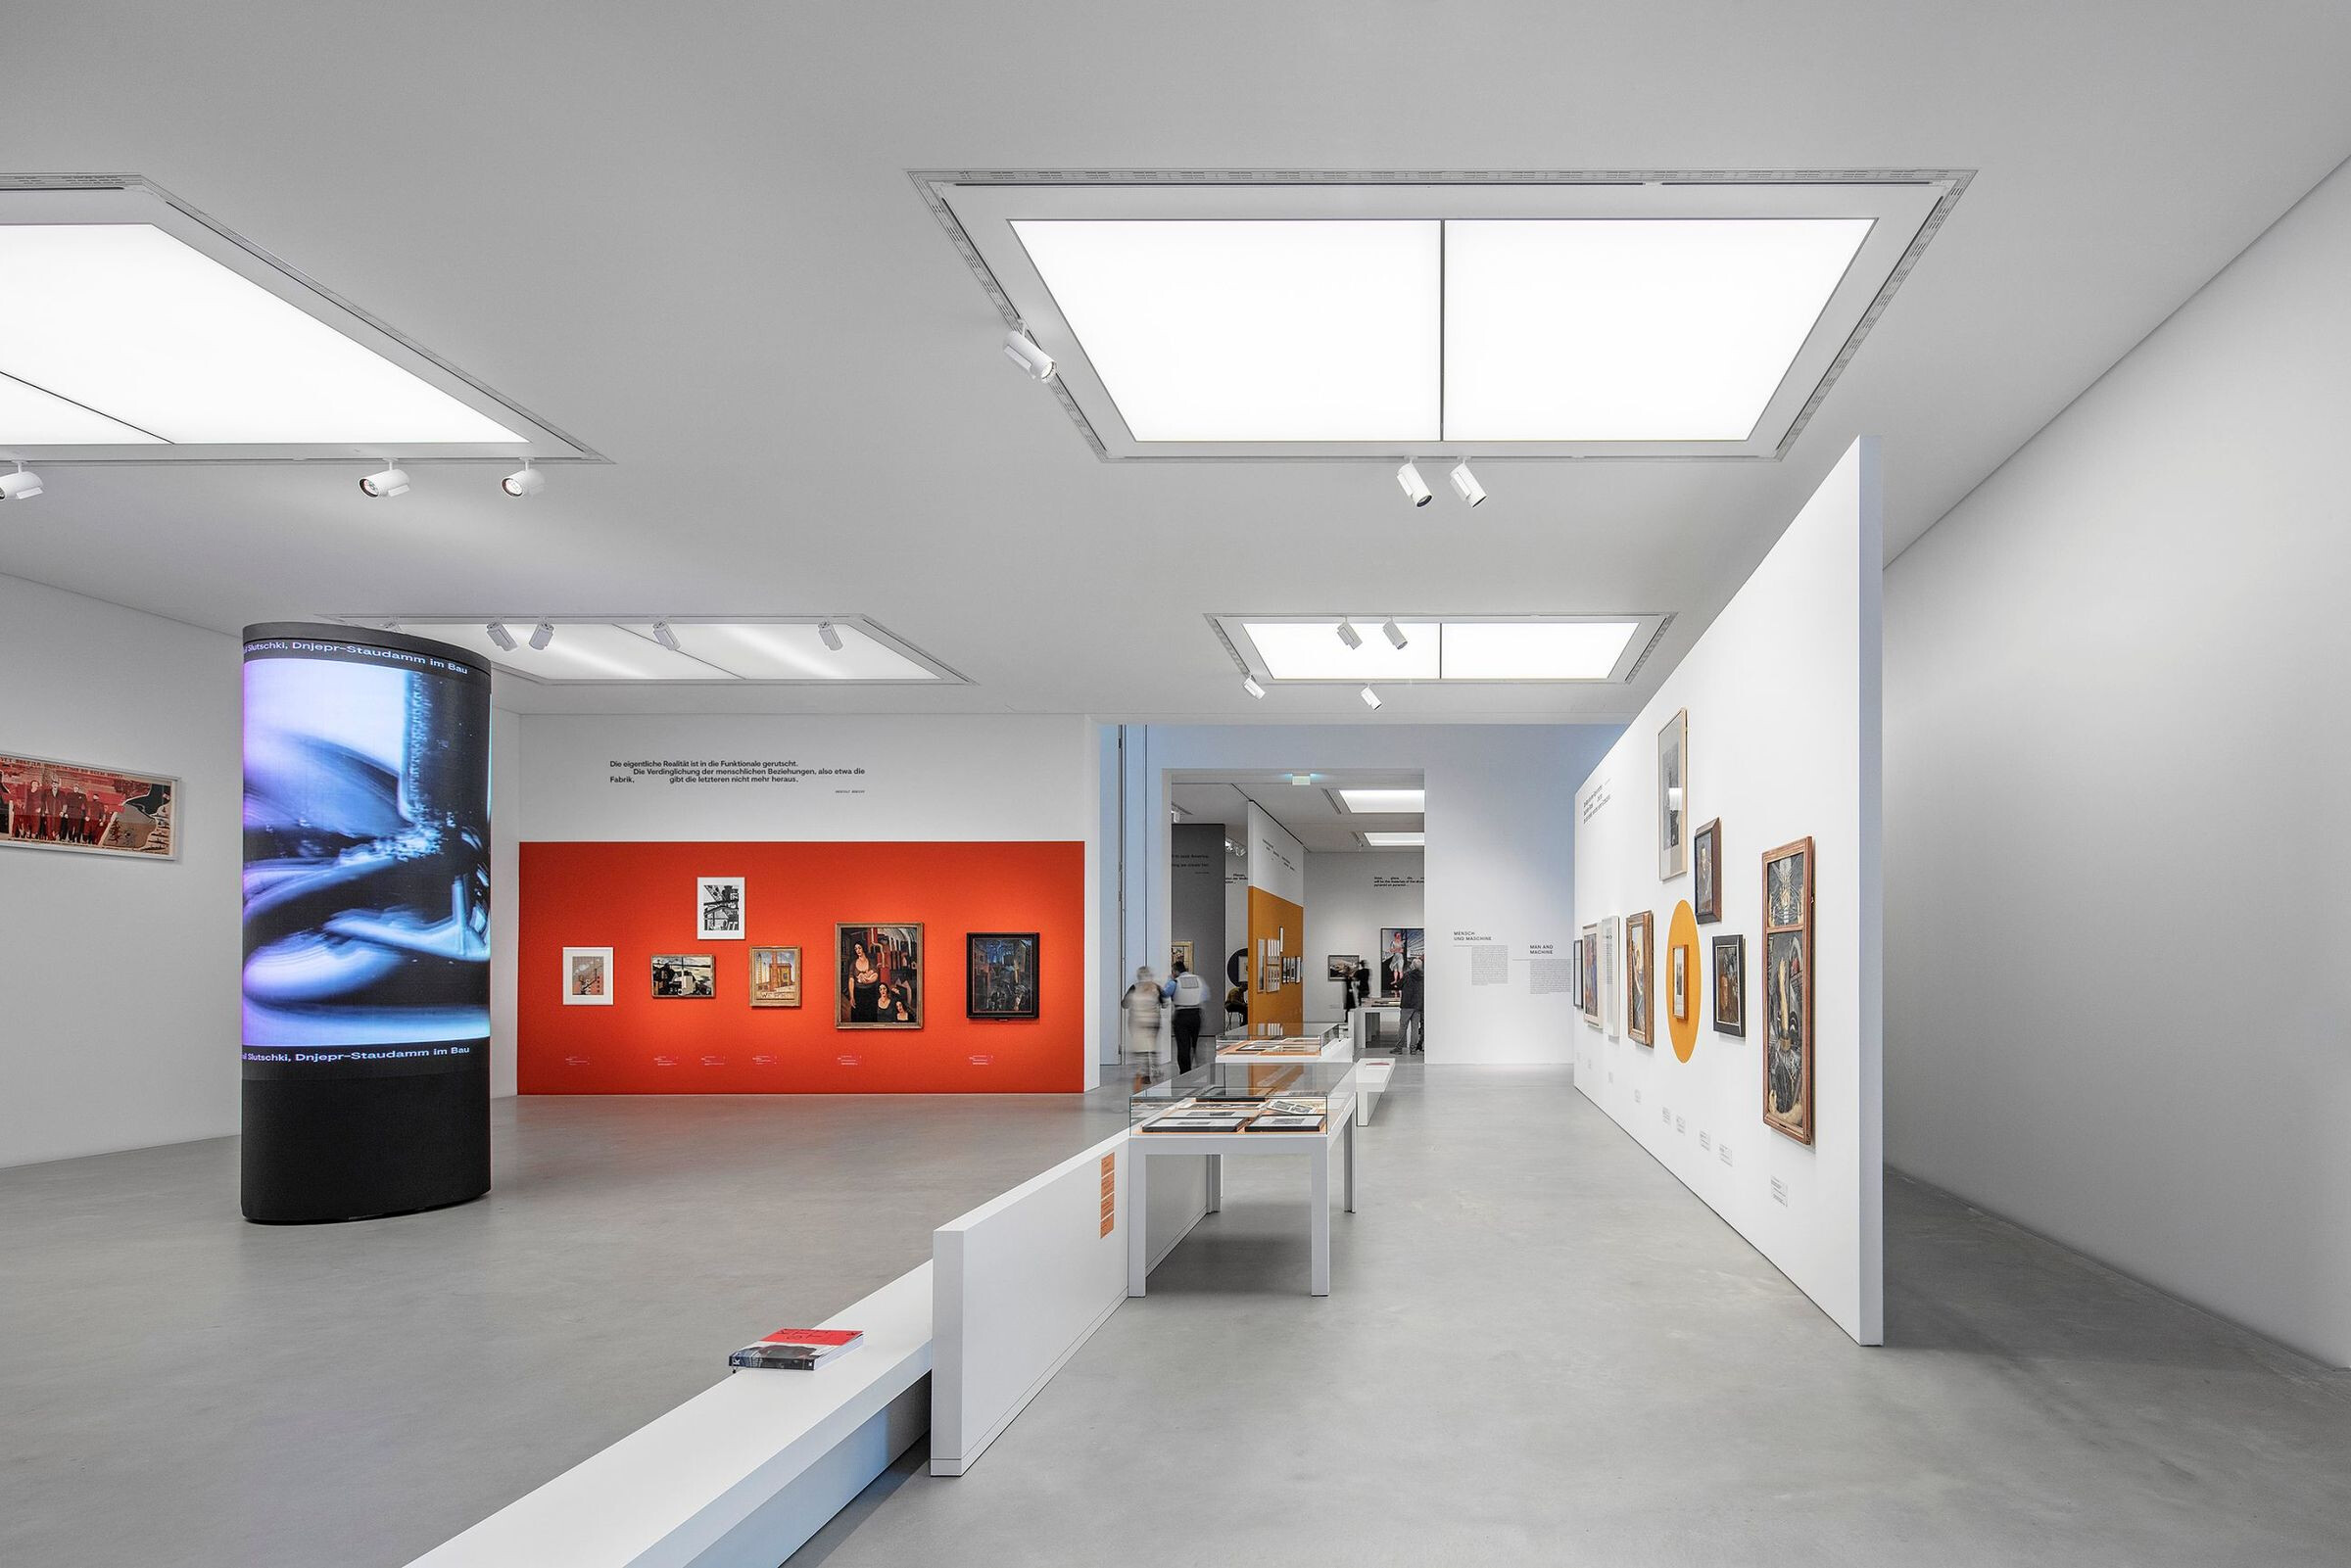 The exhibits and the atrium are highlighted using ARCOS 3 LED xpert spotlights from Zumtobel. The result: flawless accents and excellent efficiency.